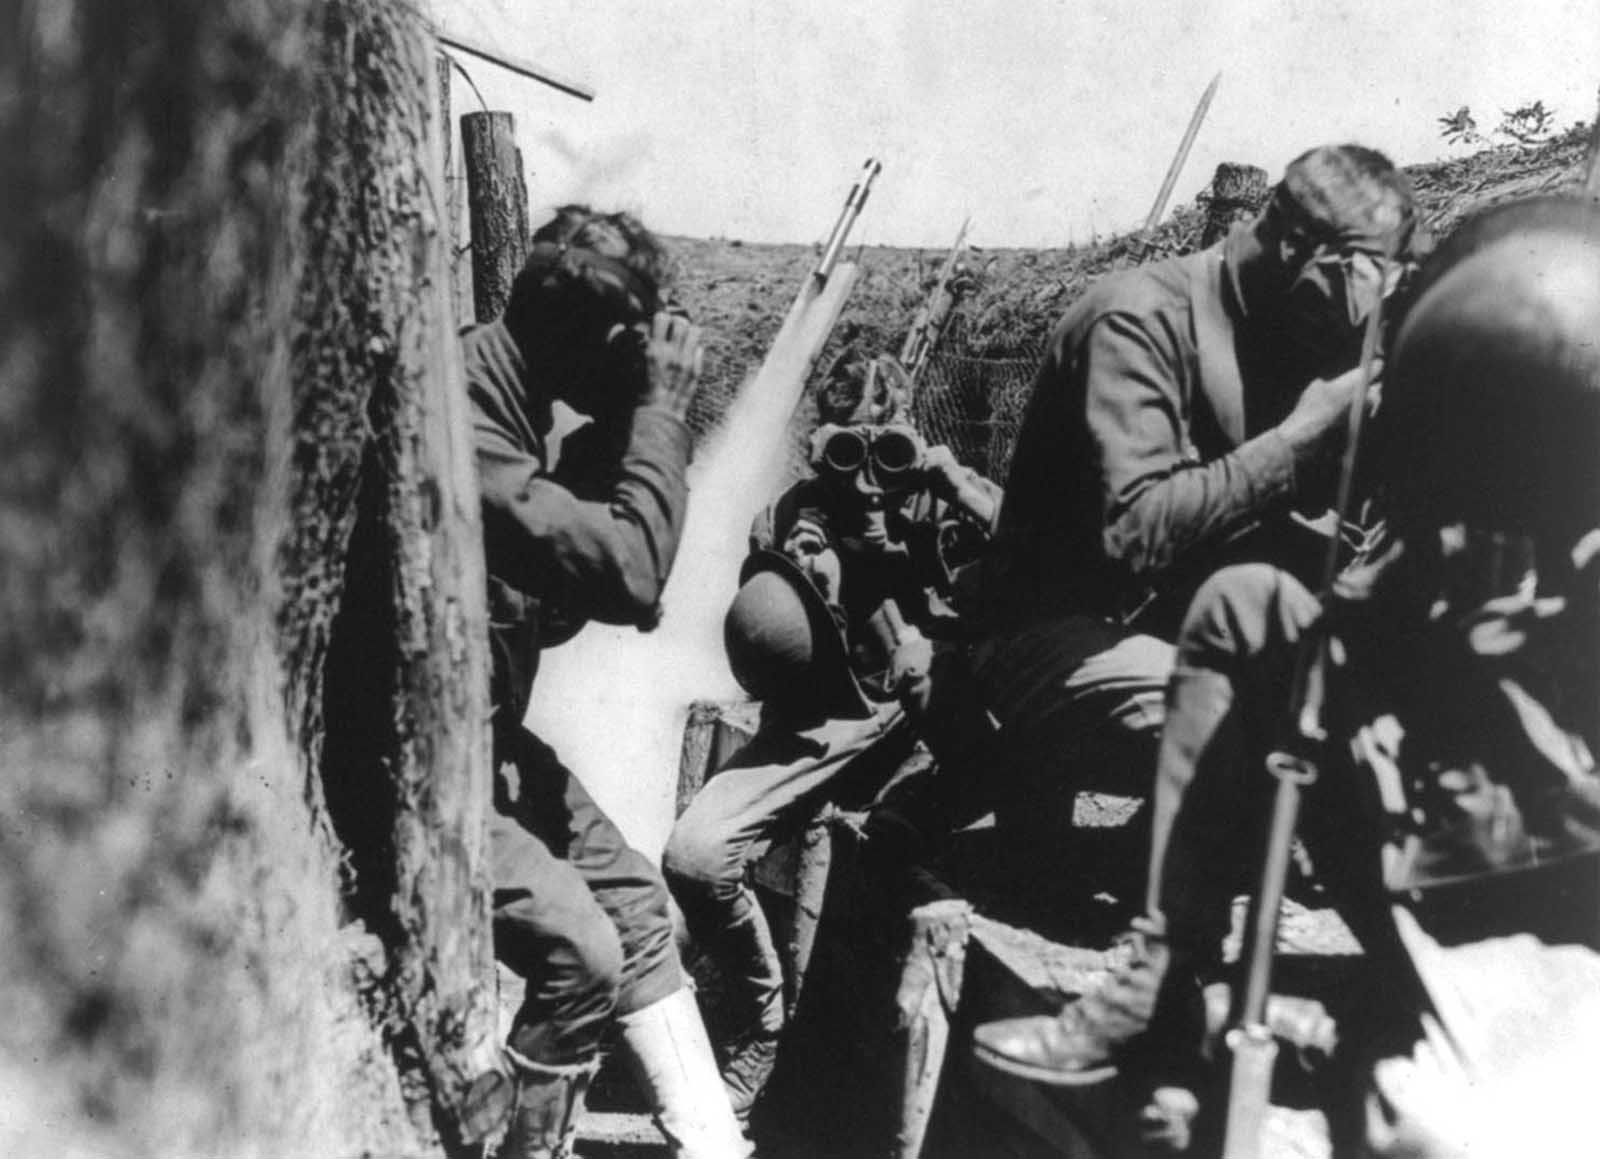 U.S. soldiers in trench putting on gas masks. Behind them, a signal rocket appears to be in mid-launch. When gas attacks were detected, alarms used included gongs and signal rockets.